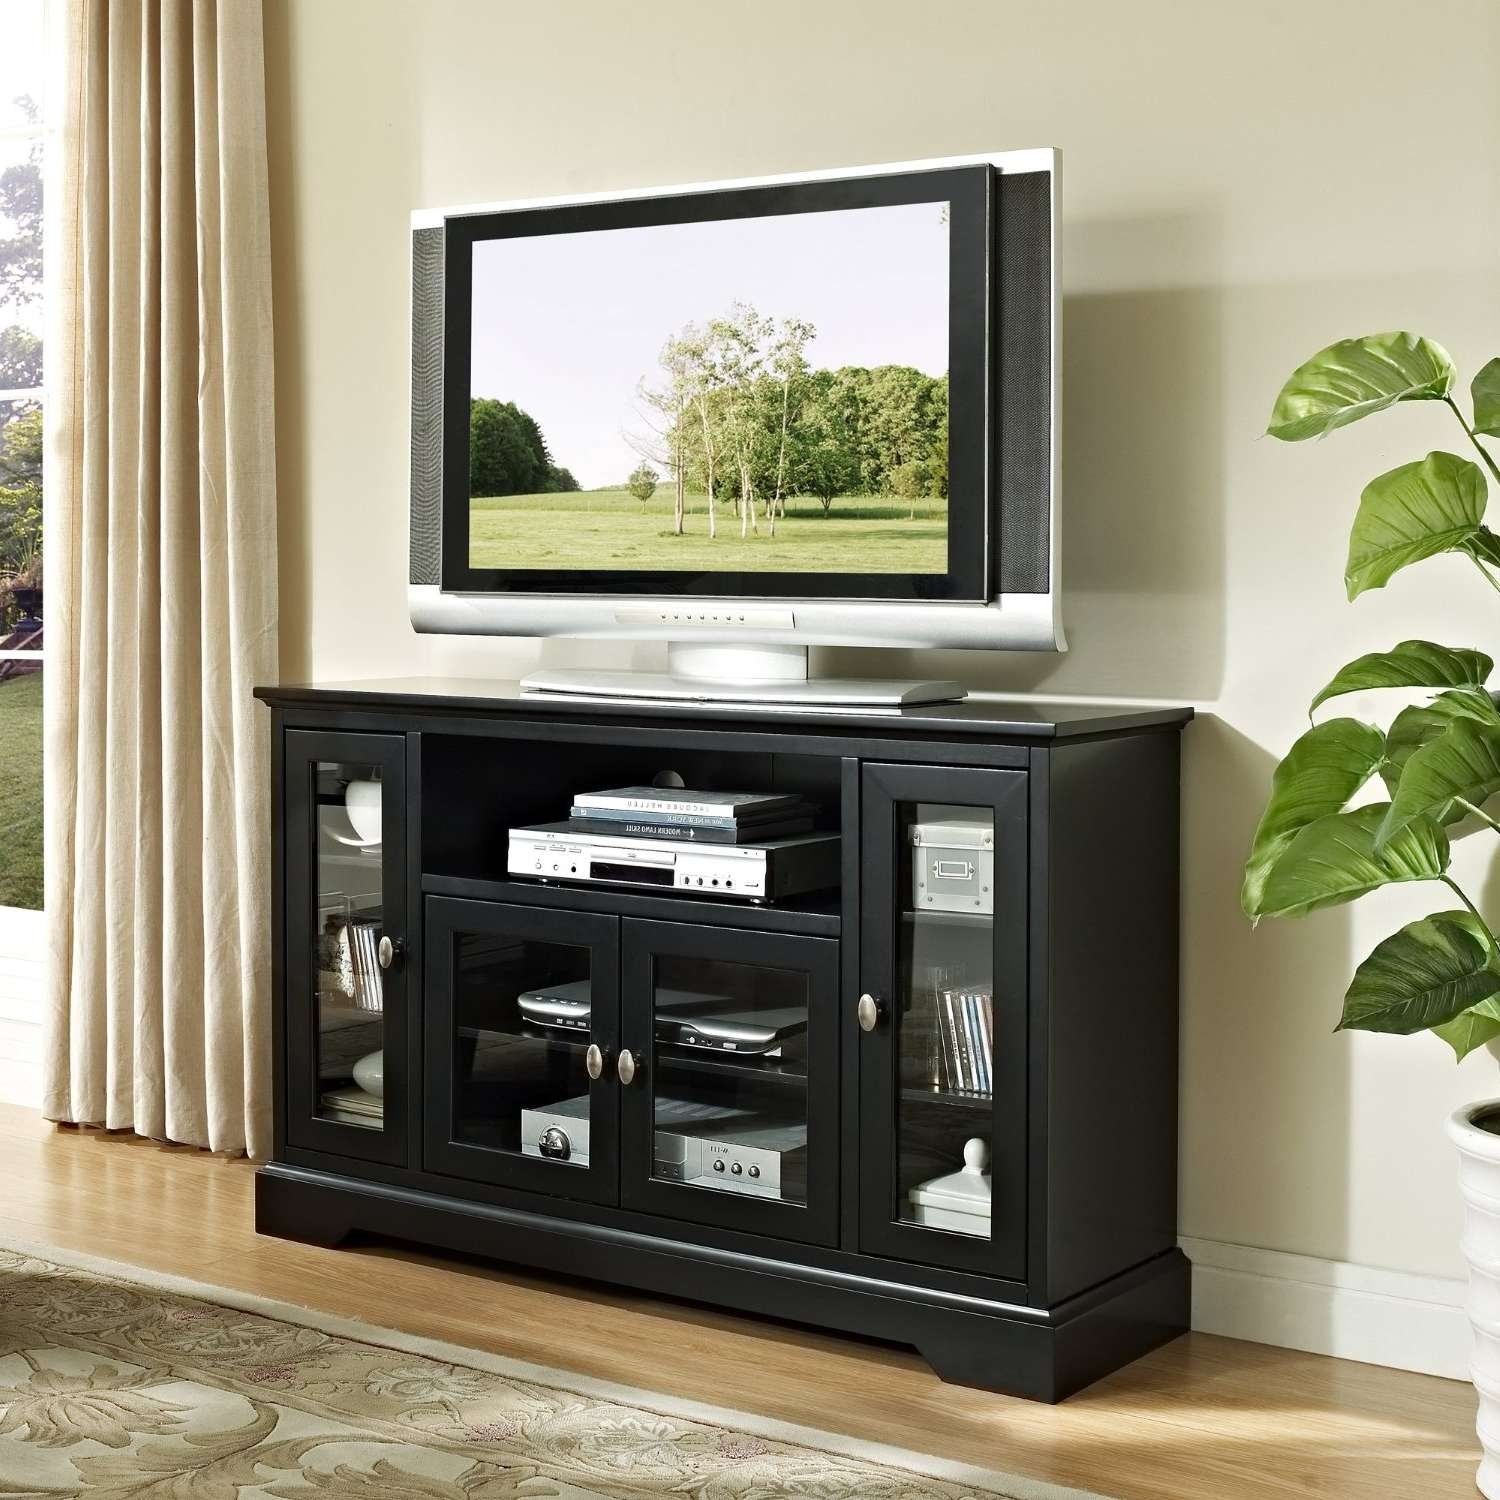 Light Wood Tv Stand Simple Room With Ikea Besta Media Cabinet Of Regarding Wooden Tv Stands With Glass Doors (View 5 of 15)